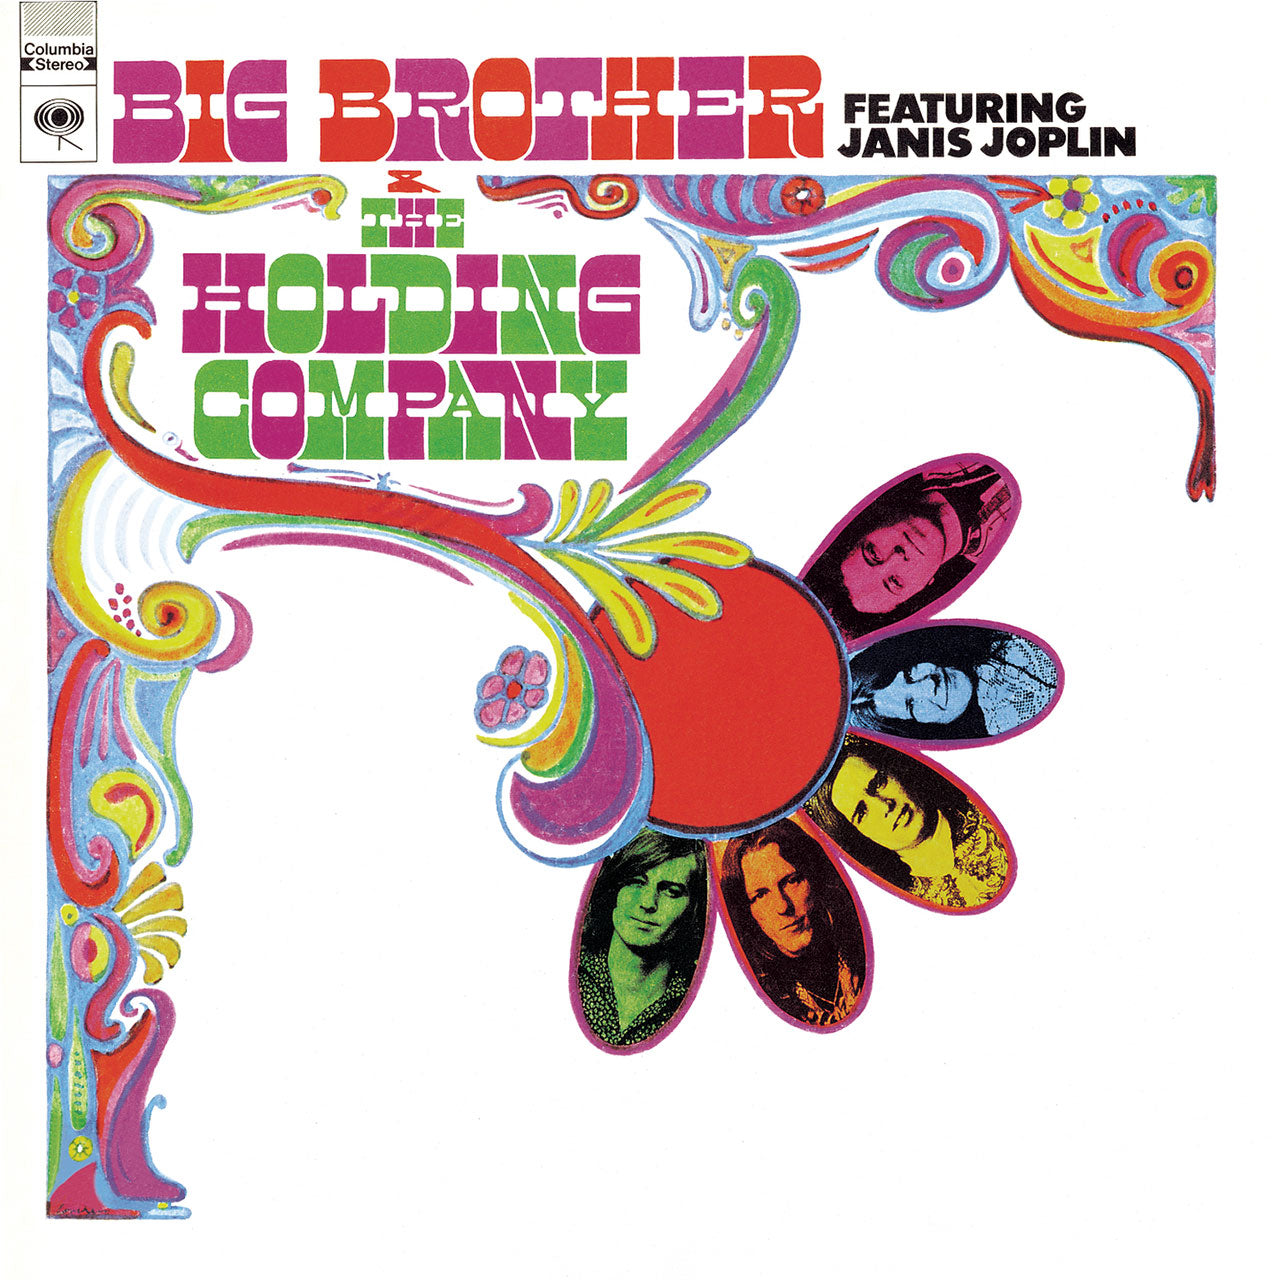 Big Brother and the Holding Company - Big Brother & the Holding Company (CD)